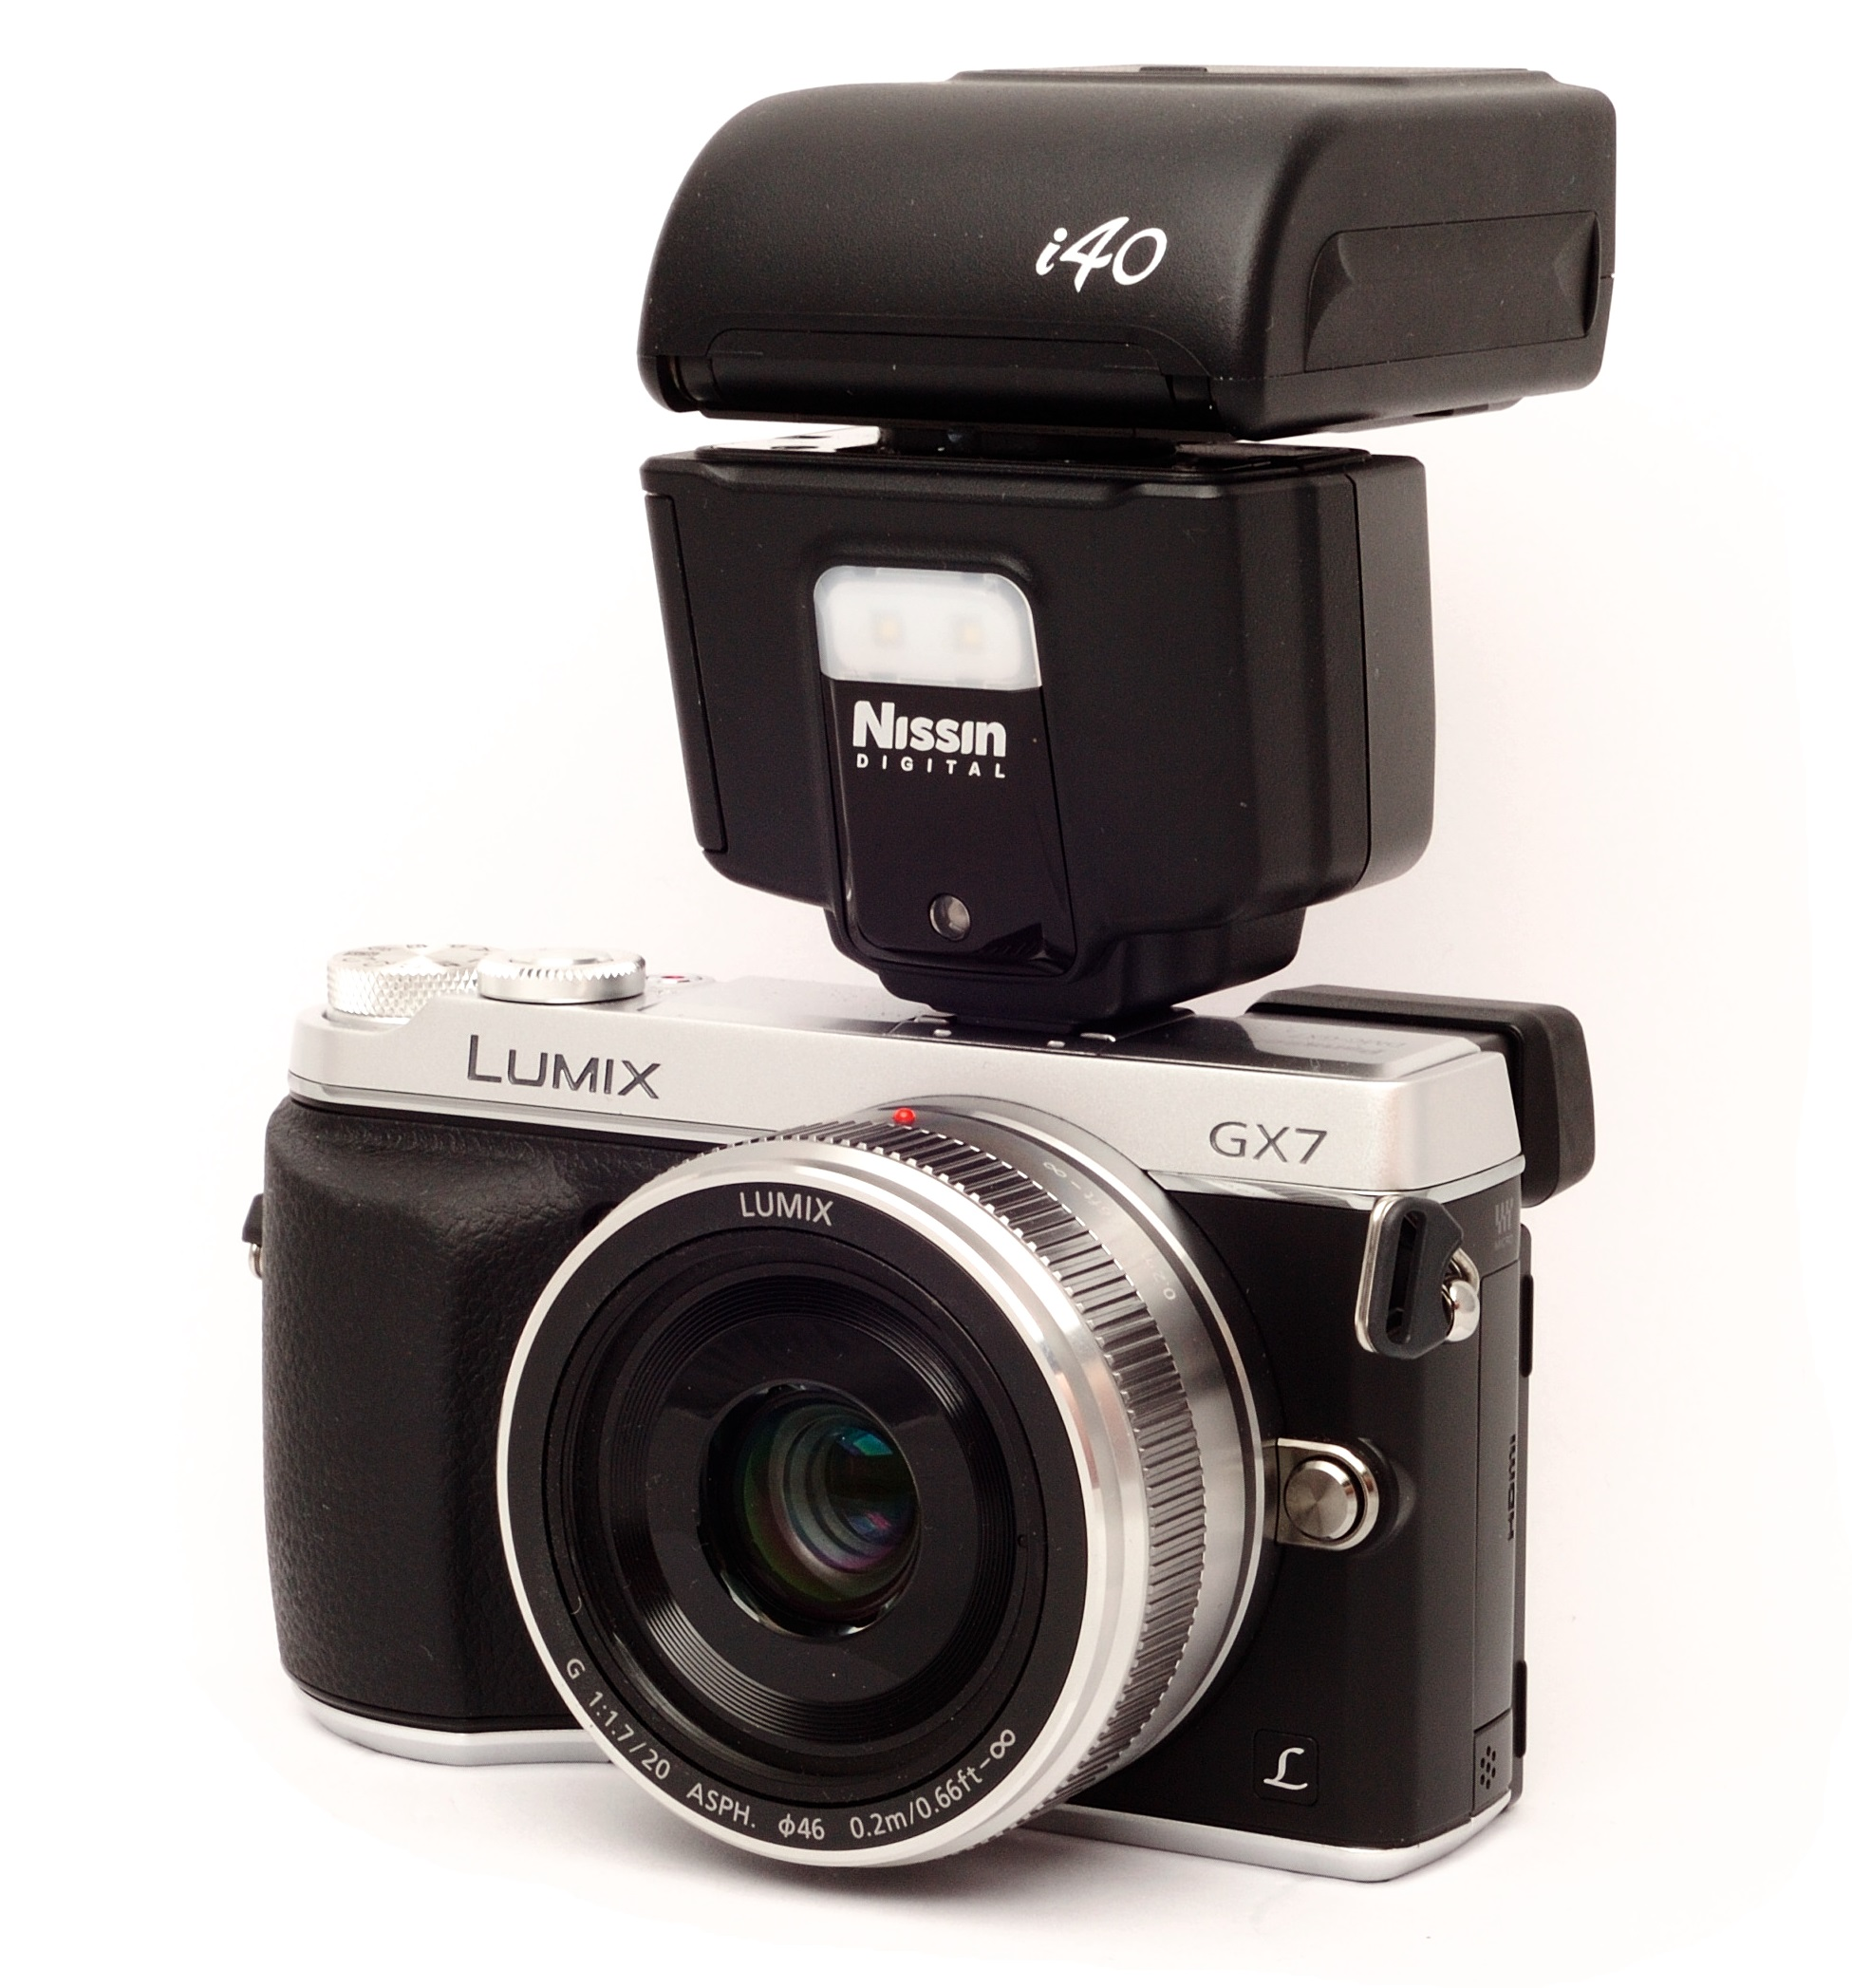 Nissin i40 for Micro Four Thirds review - Lighting Rumours